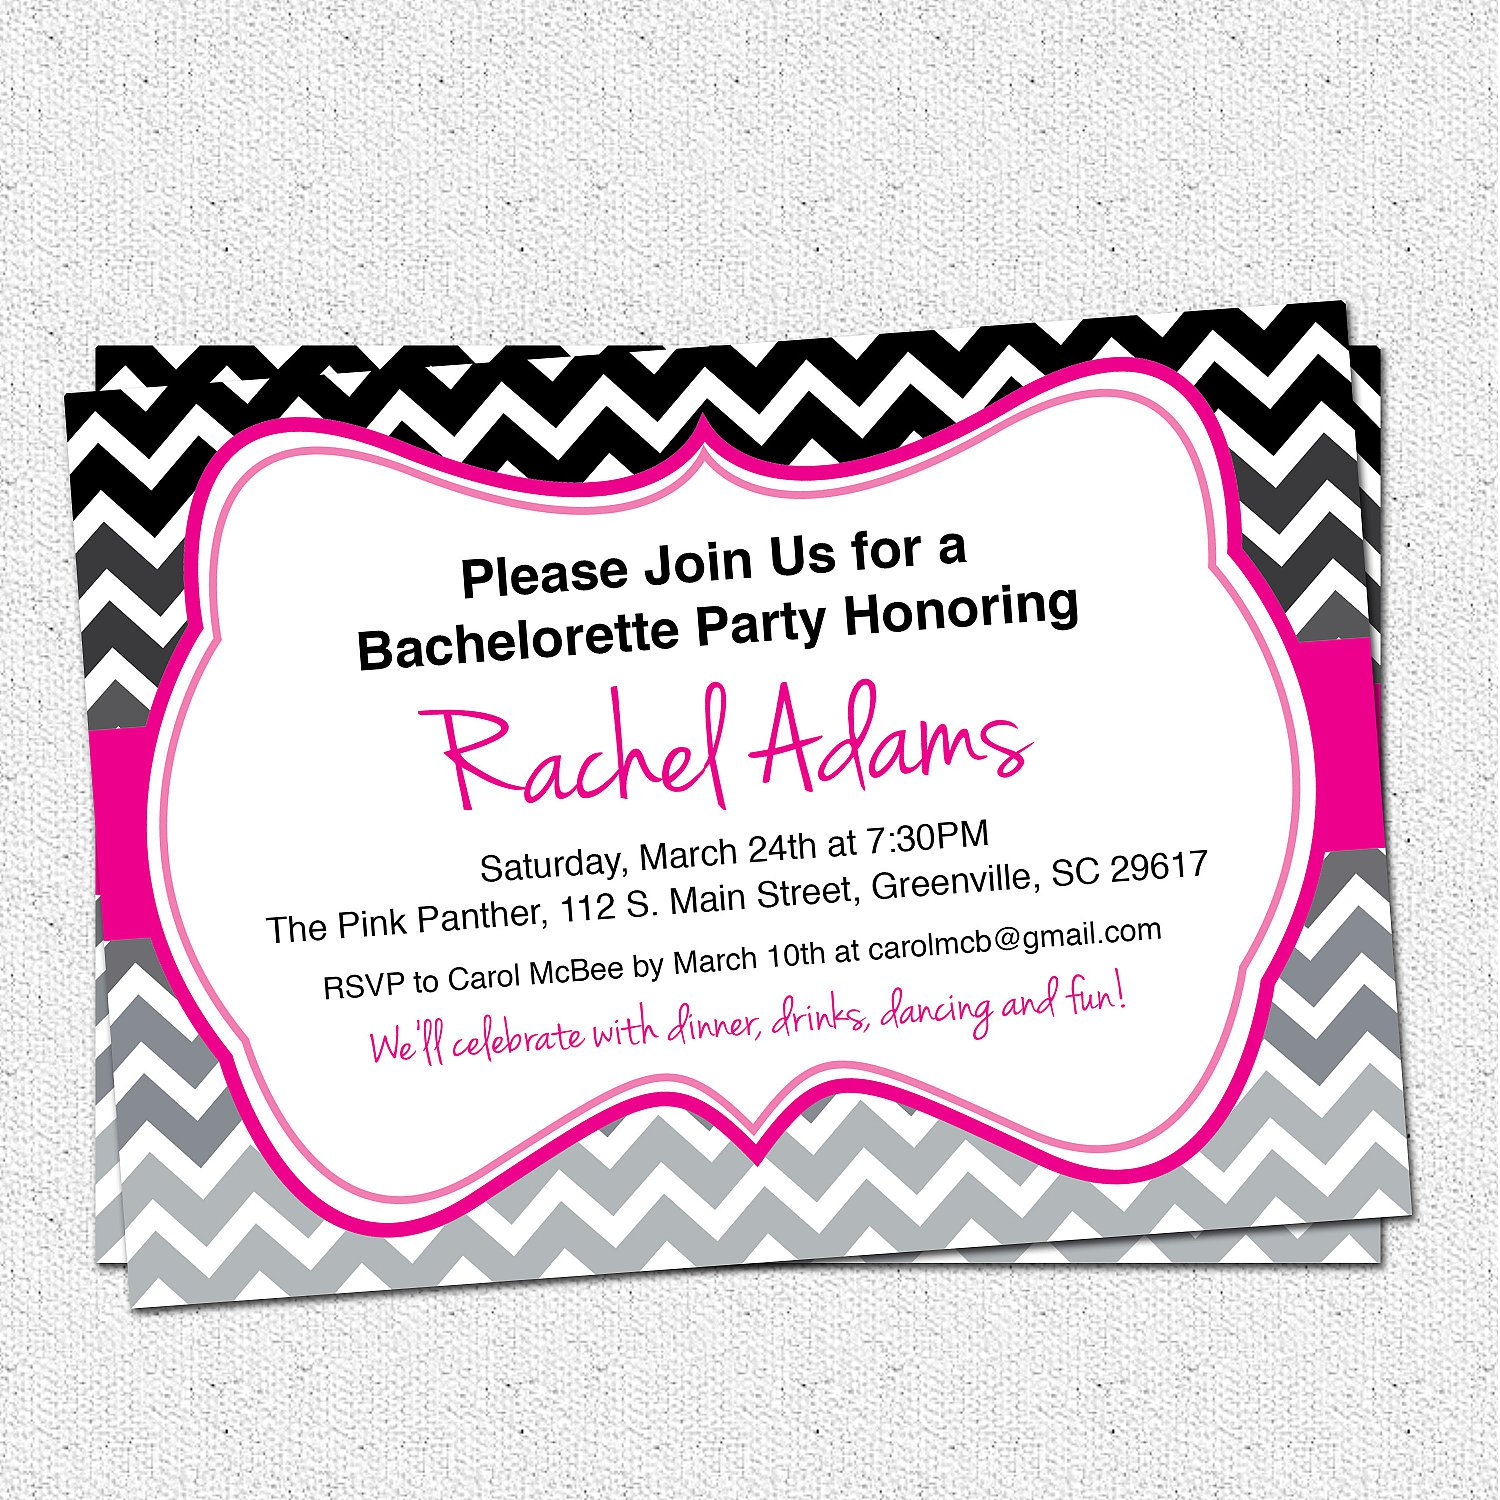 Bachelorette Party Invitations Printable Free